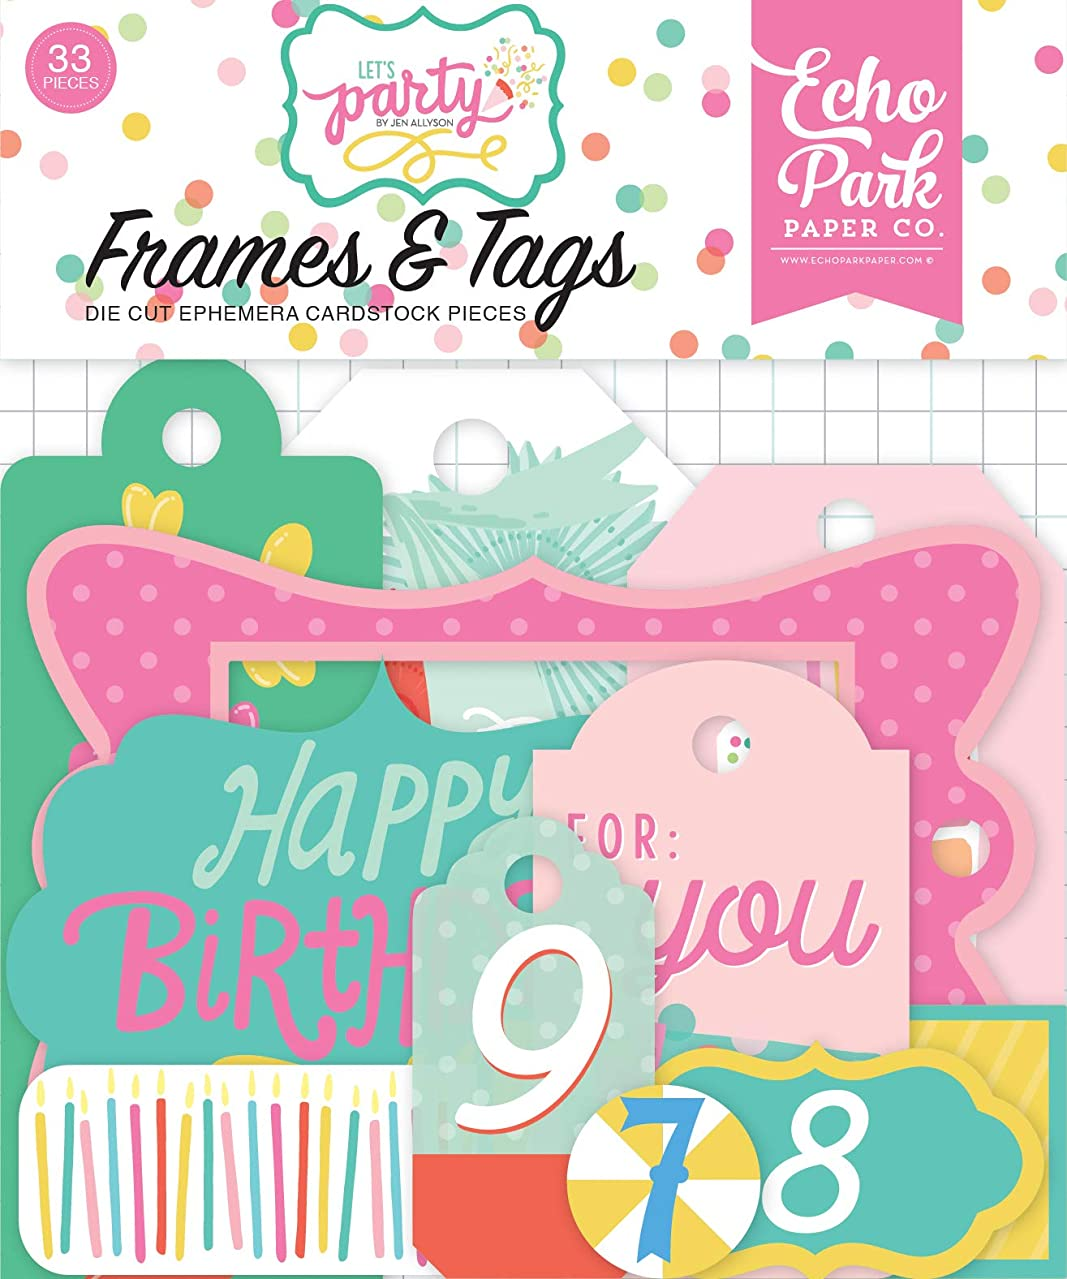 Echo Park Paper Company LP170025 Let's Party Frames & Tags Ephemera Teal, Pink, Green, Yellow